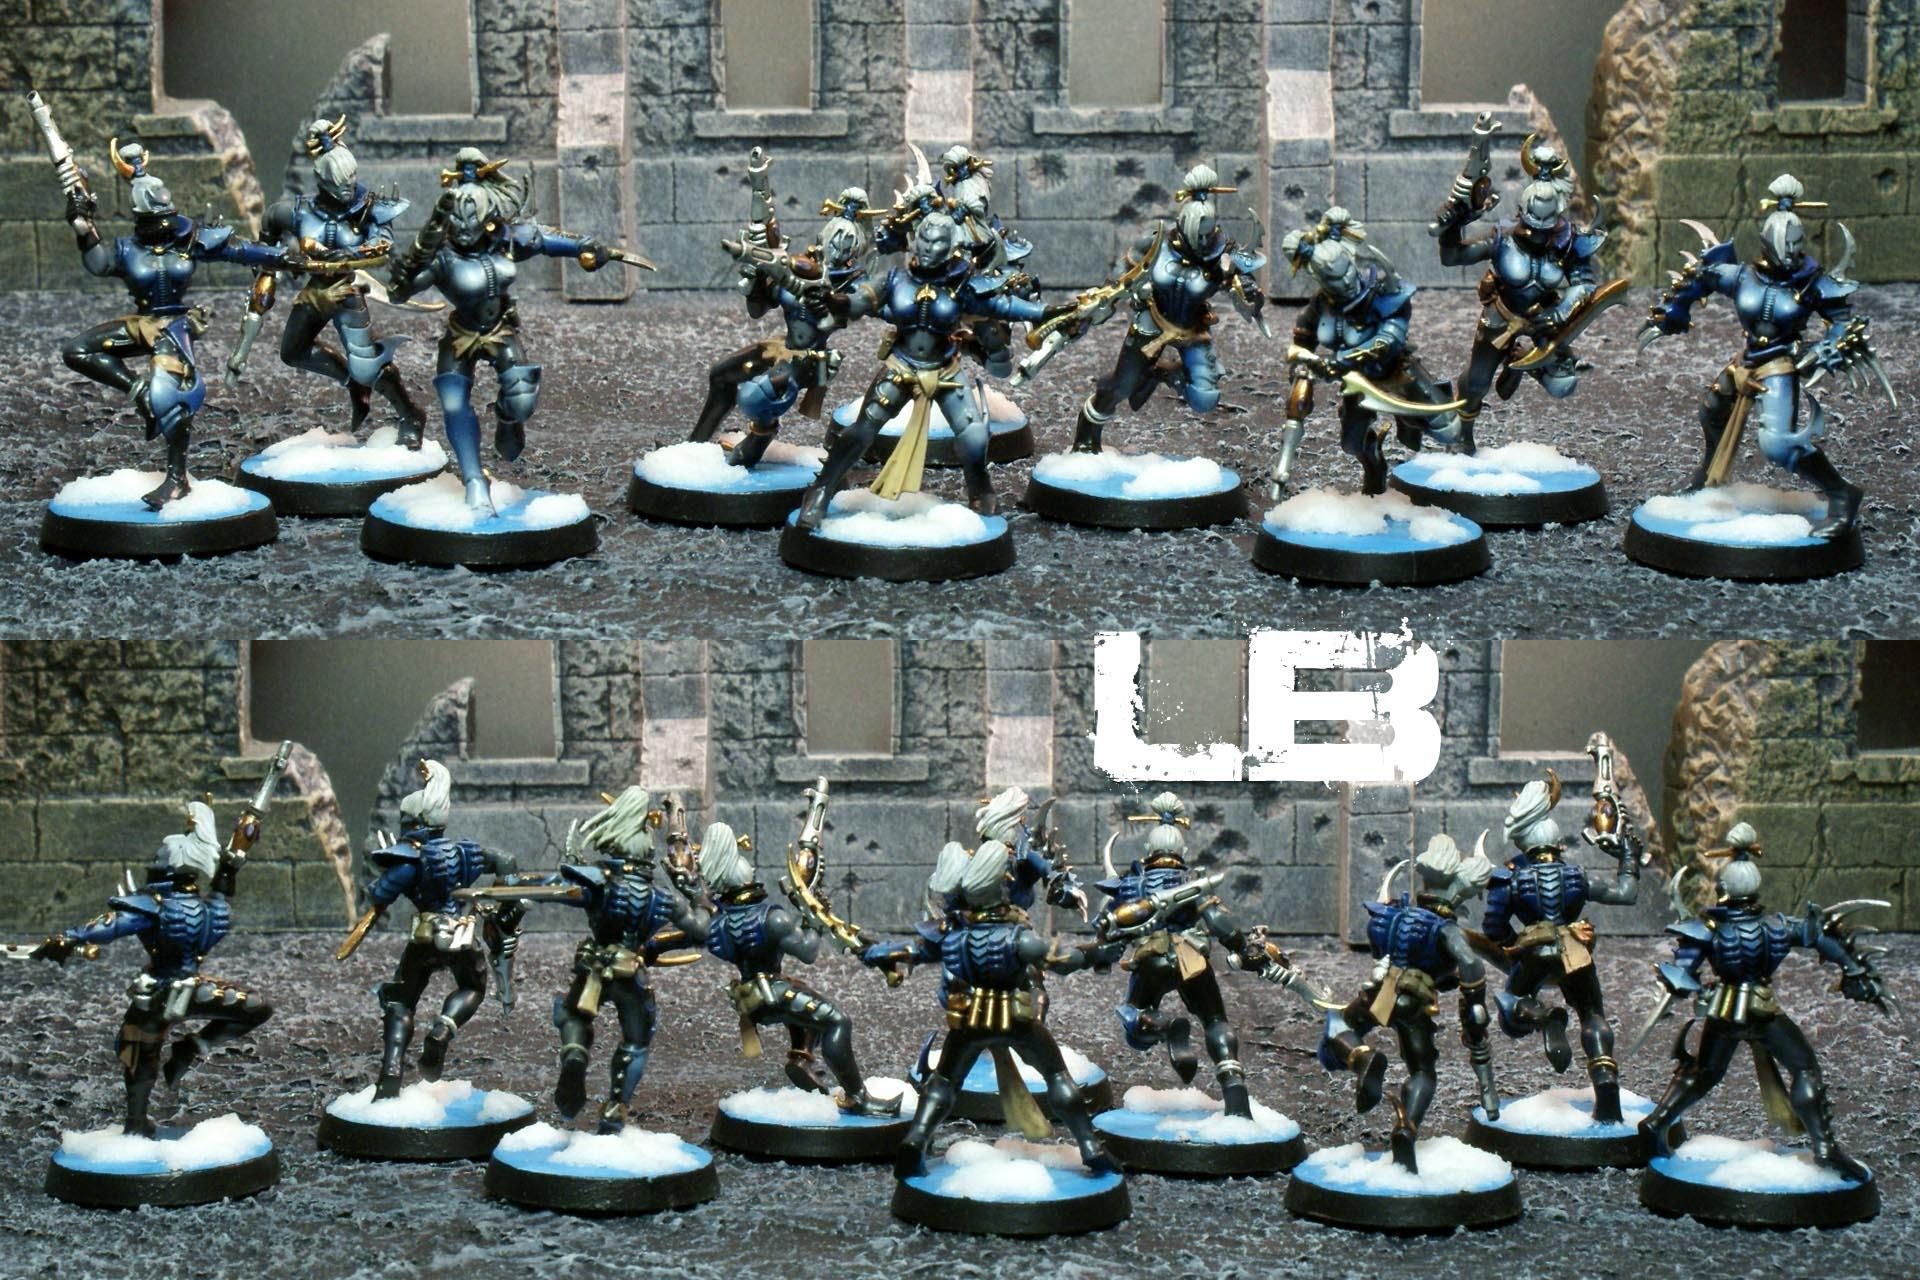 Awesome Paint Job, Awesomepaintjob.com, Close Combat Squad, Dark Eldar, Dark Eldar Drow, Drow, Ice, Ice Theme, Kabalite, Les Bursley, Lowkeyy, Martin Harris, Scourge, Snow, Snow Theme, Solarite, The Frozen Fang, Trueborn, Vanhammer, Wych